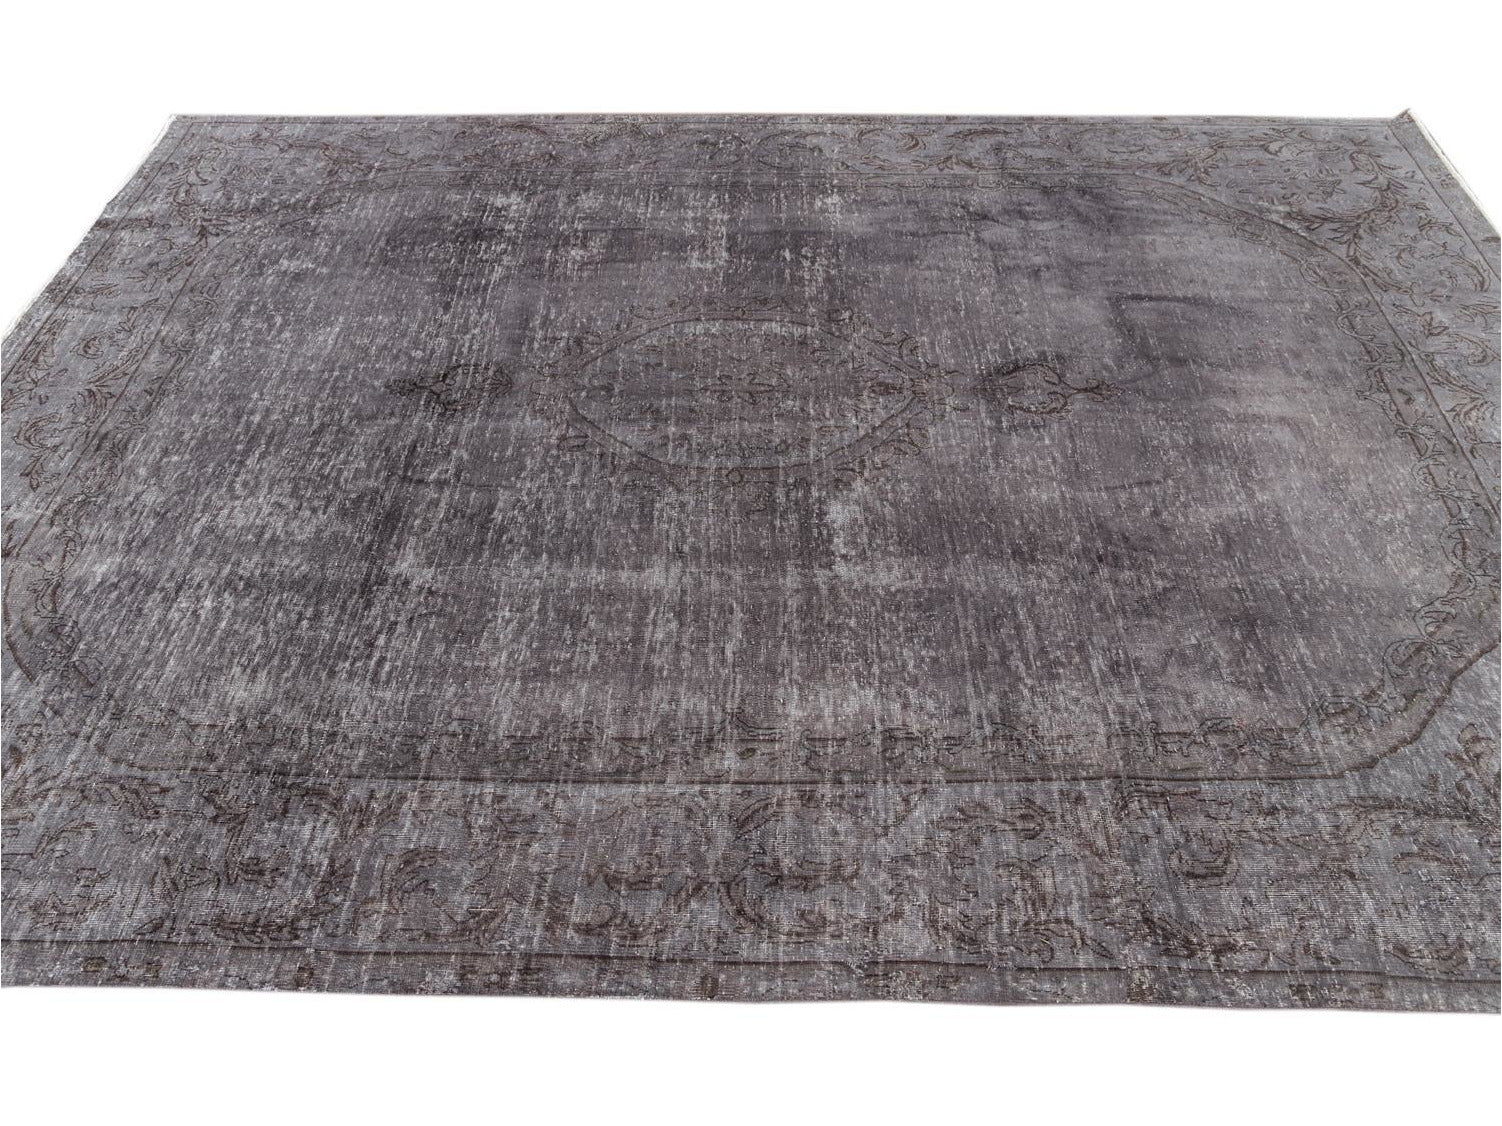 Mid 20th Century Vintage Distressed Wool Rug 7 X 10